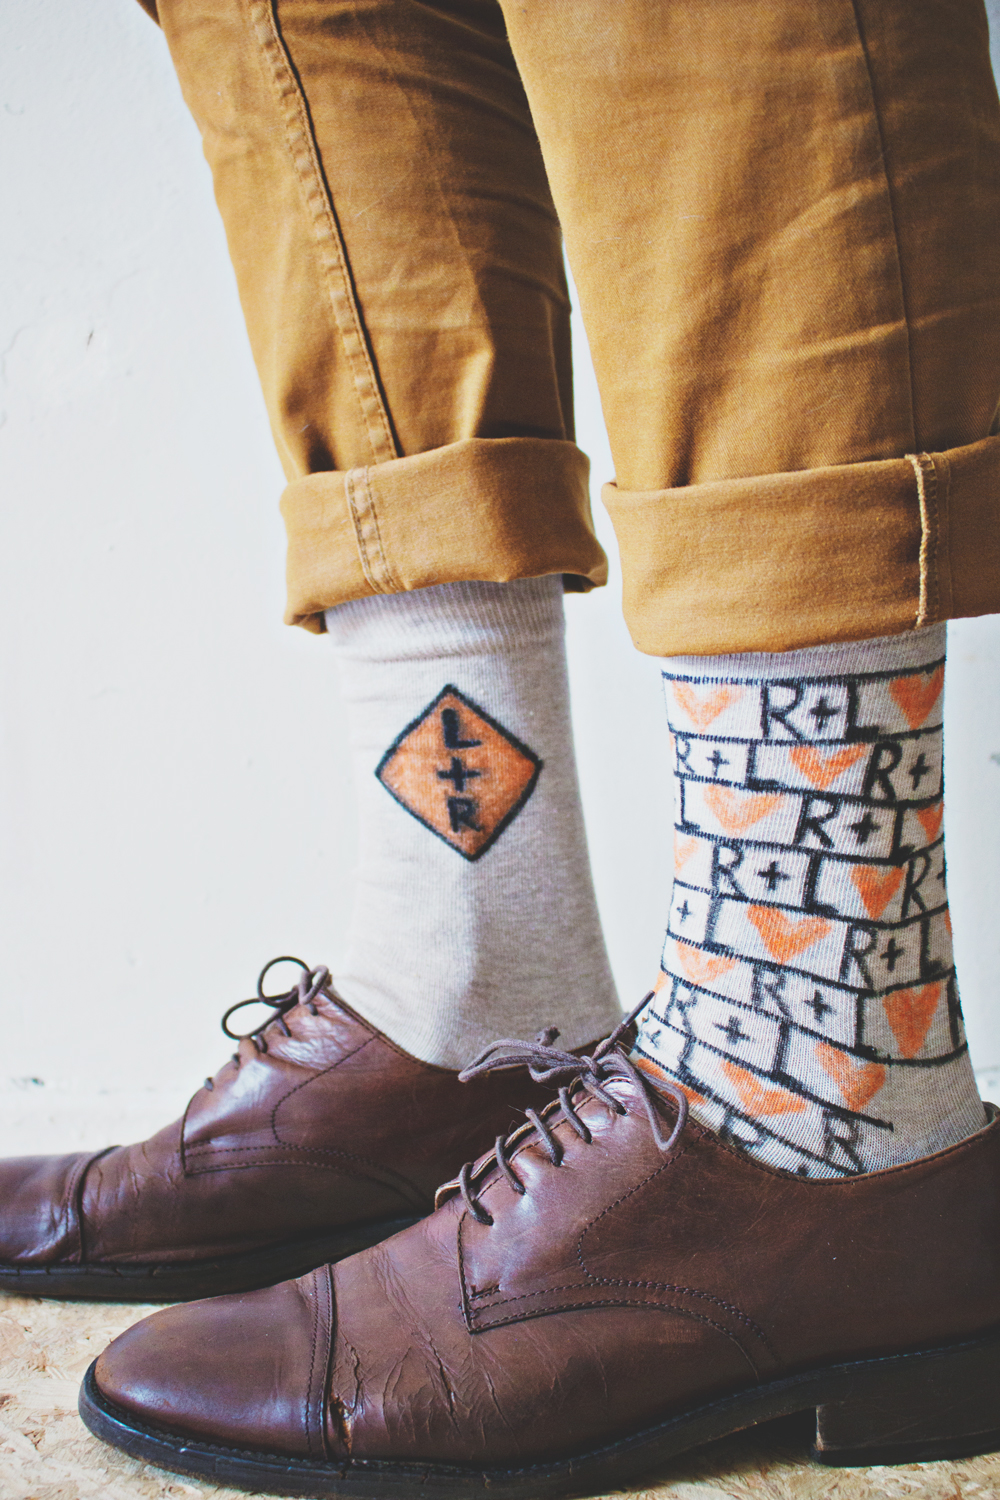 DIY-_-Personalized-Socks-6